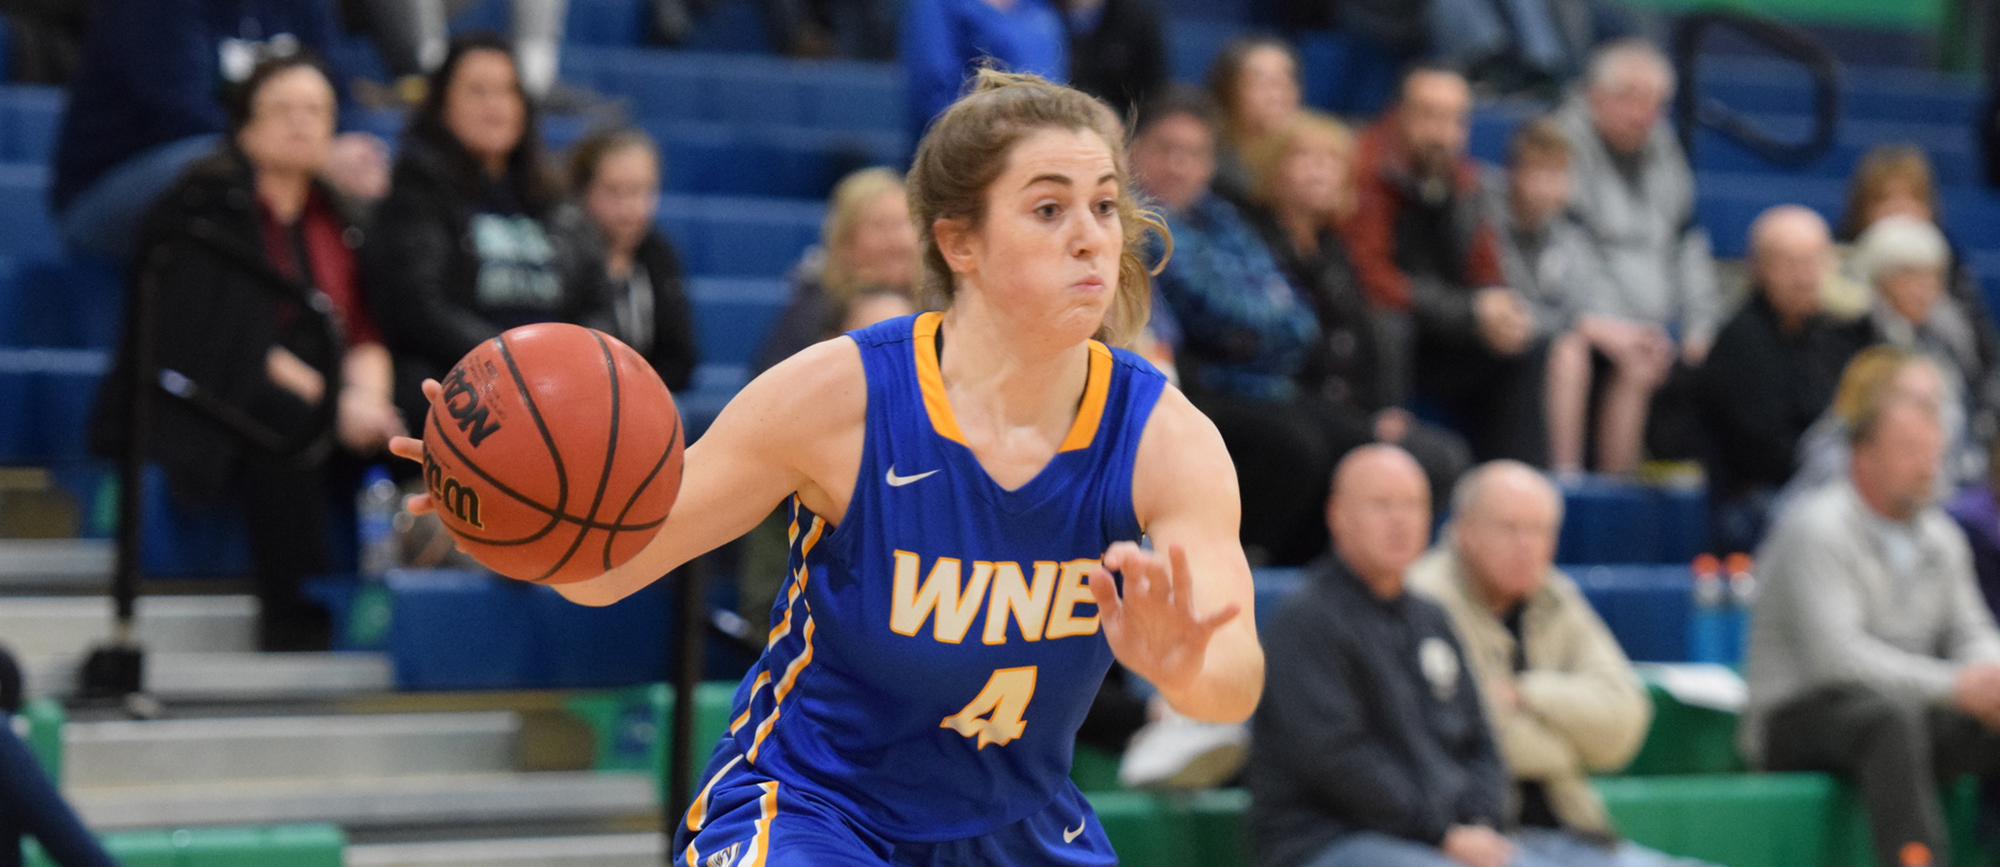 Sophomore Lauren Chadwick finished with a career-high 13 points, four rebounds, three assists and three steals in Western New England's 68-51 win over Gordon on Saturday. (Photo by Rachael Margossian)